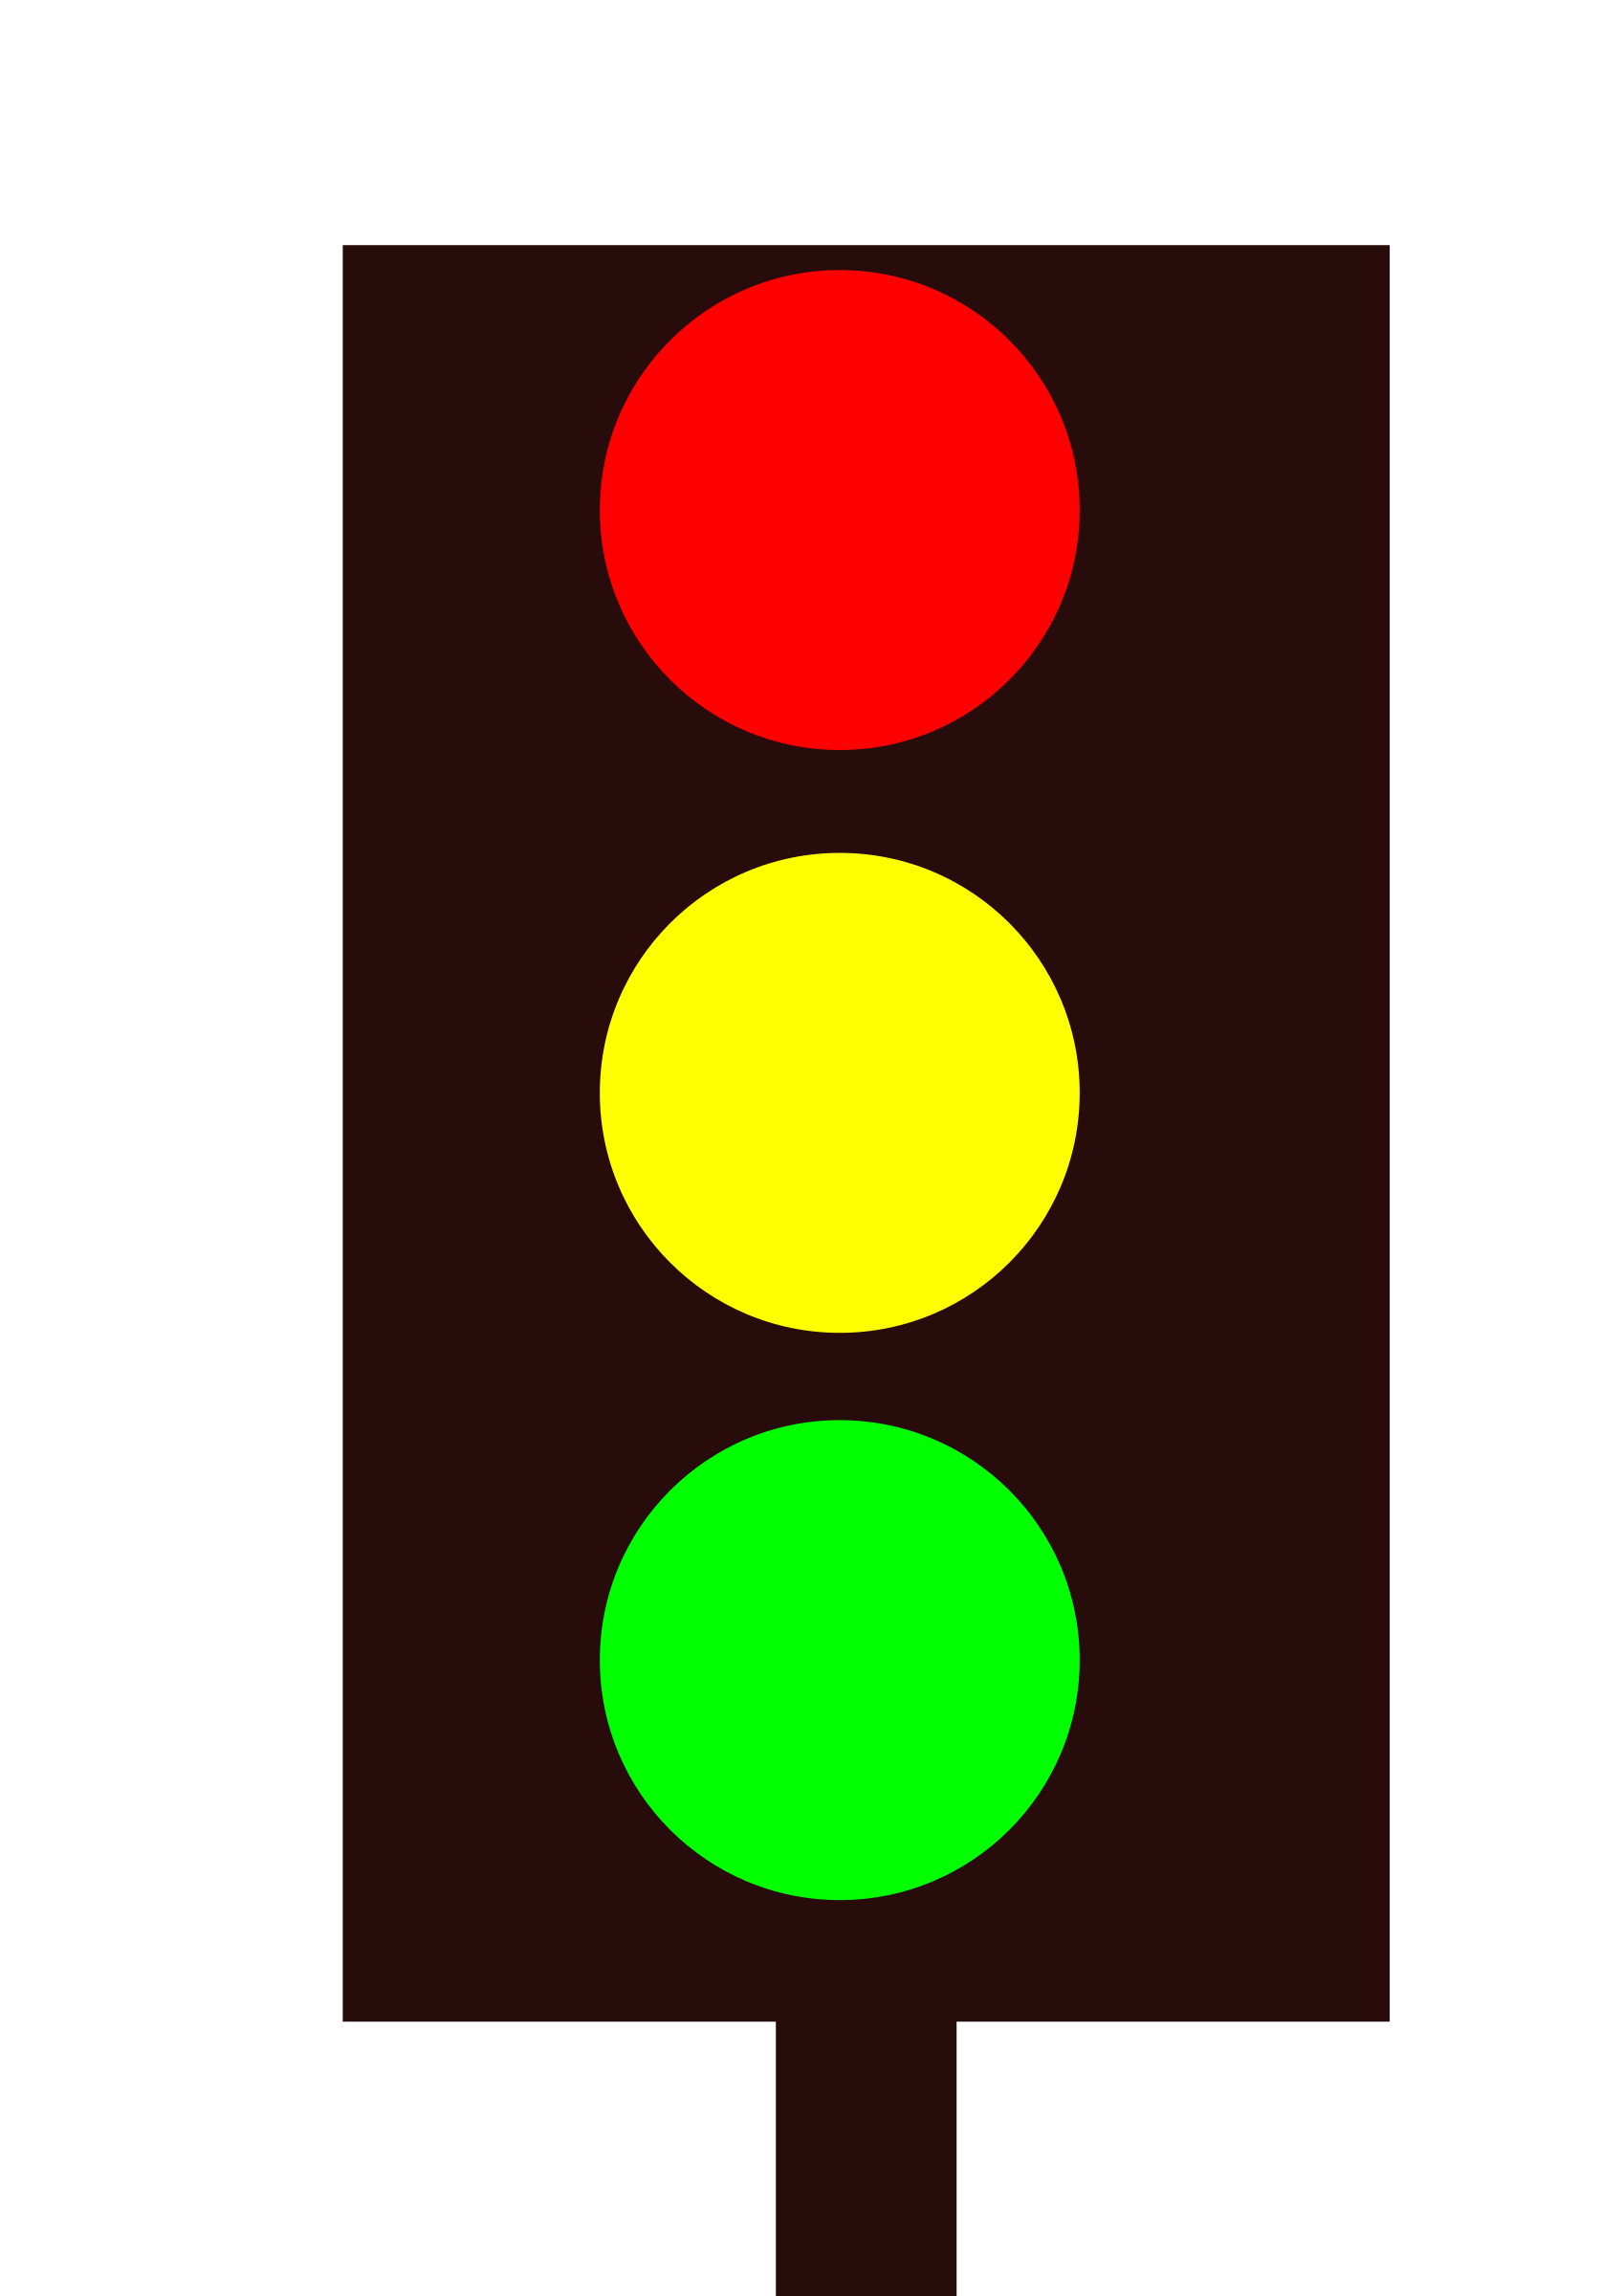 Traffic Light by PeterBrough